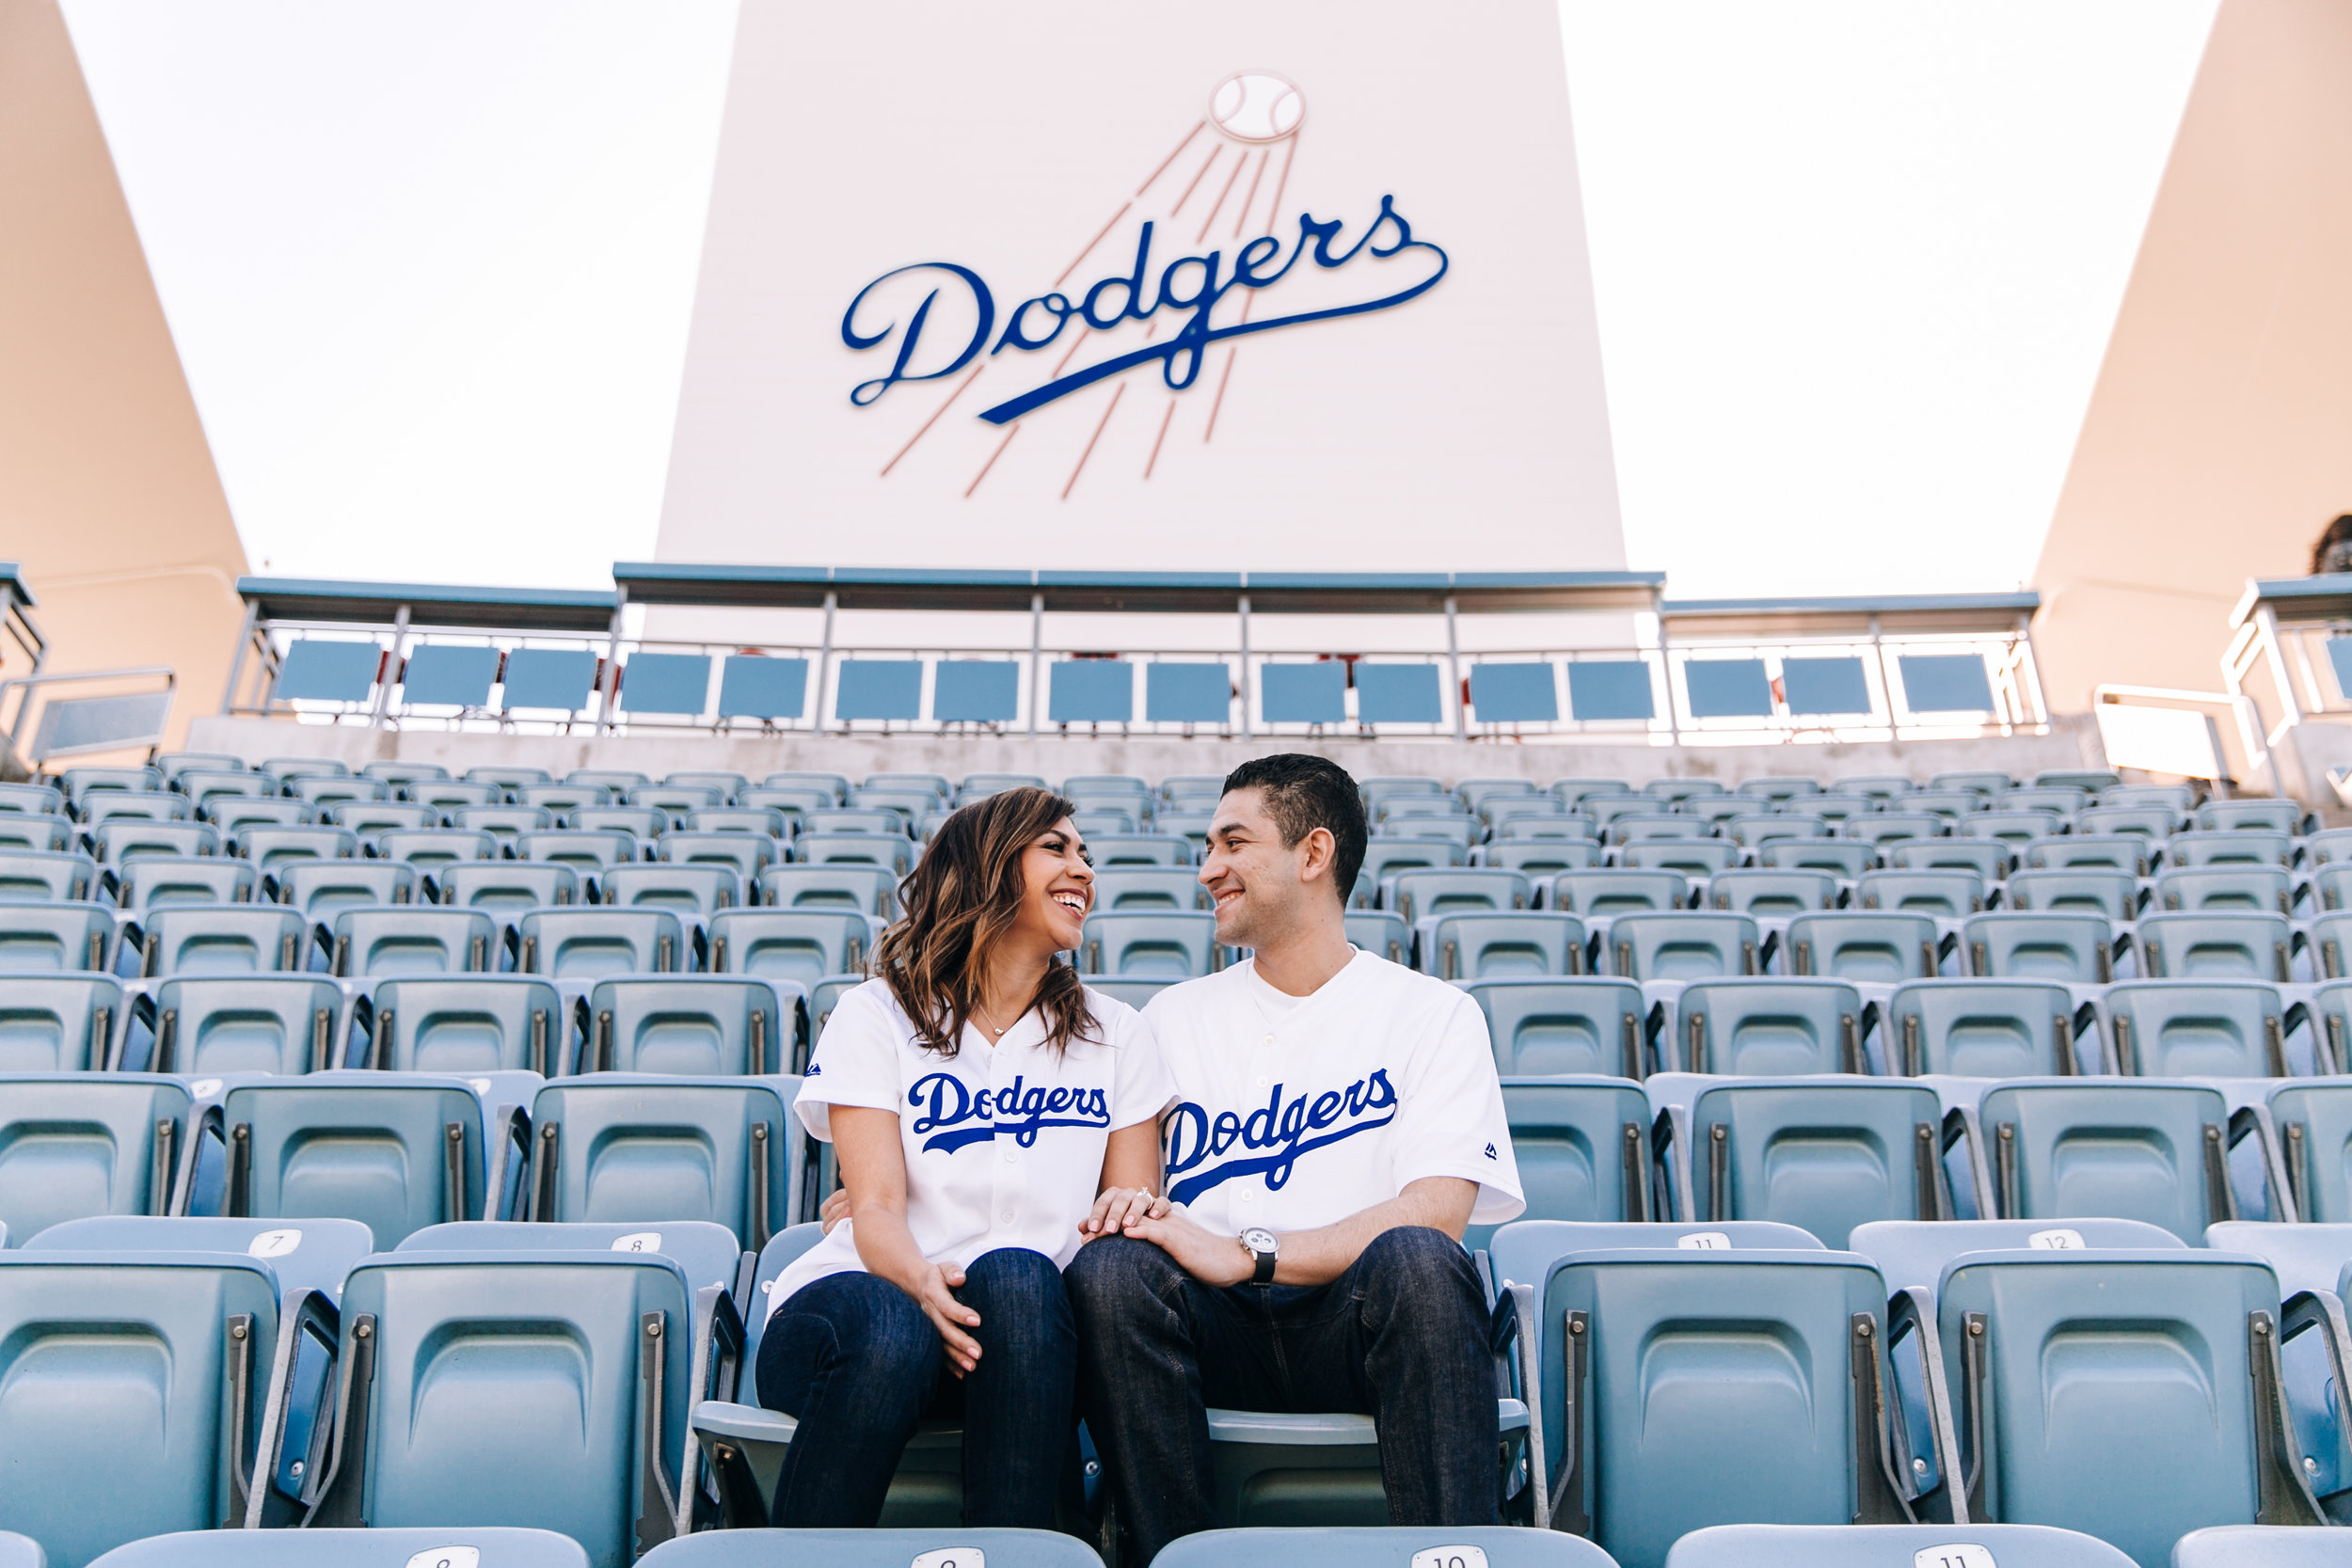 LA engagement photographer, Southern California engagement photographer, Los Angeles engagement photographer, SoCal engagement photographer, Dodger Stadium engagement session, Dodgers engagement